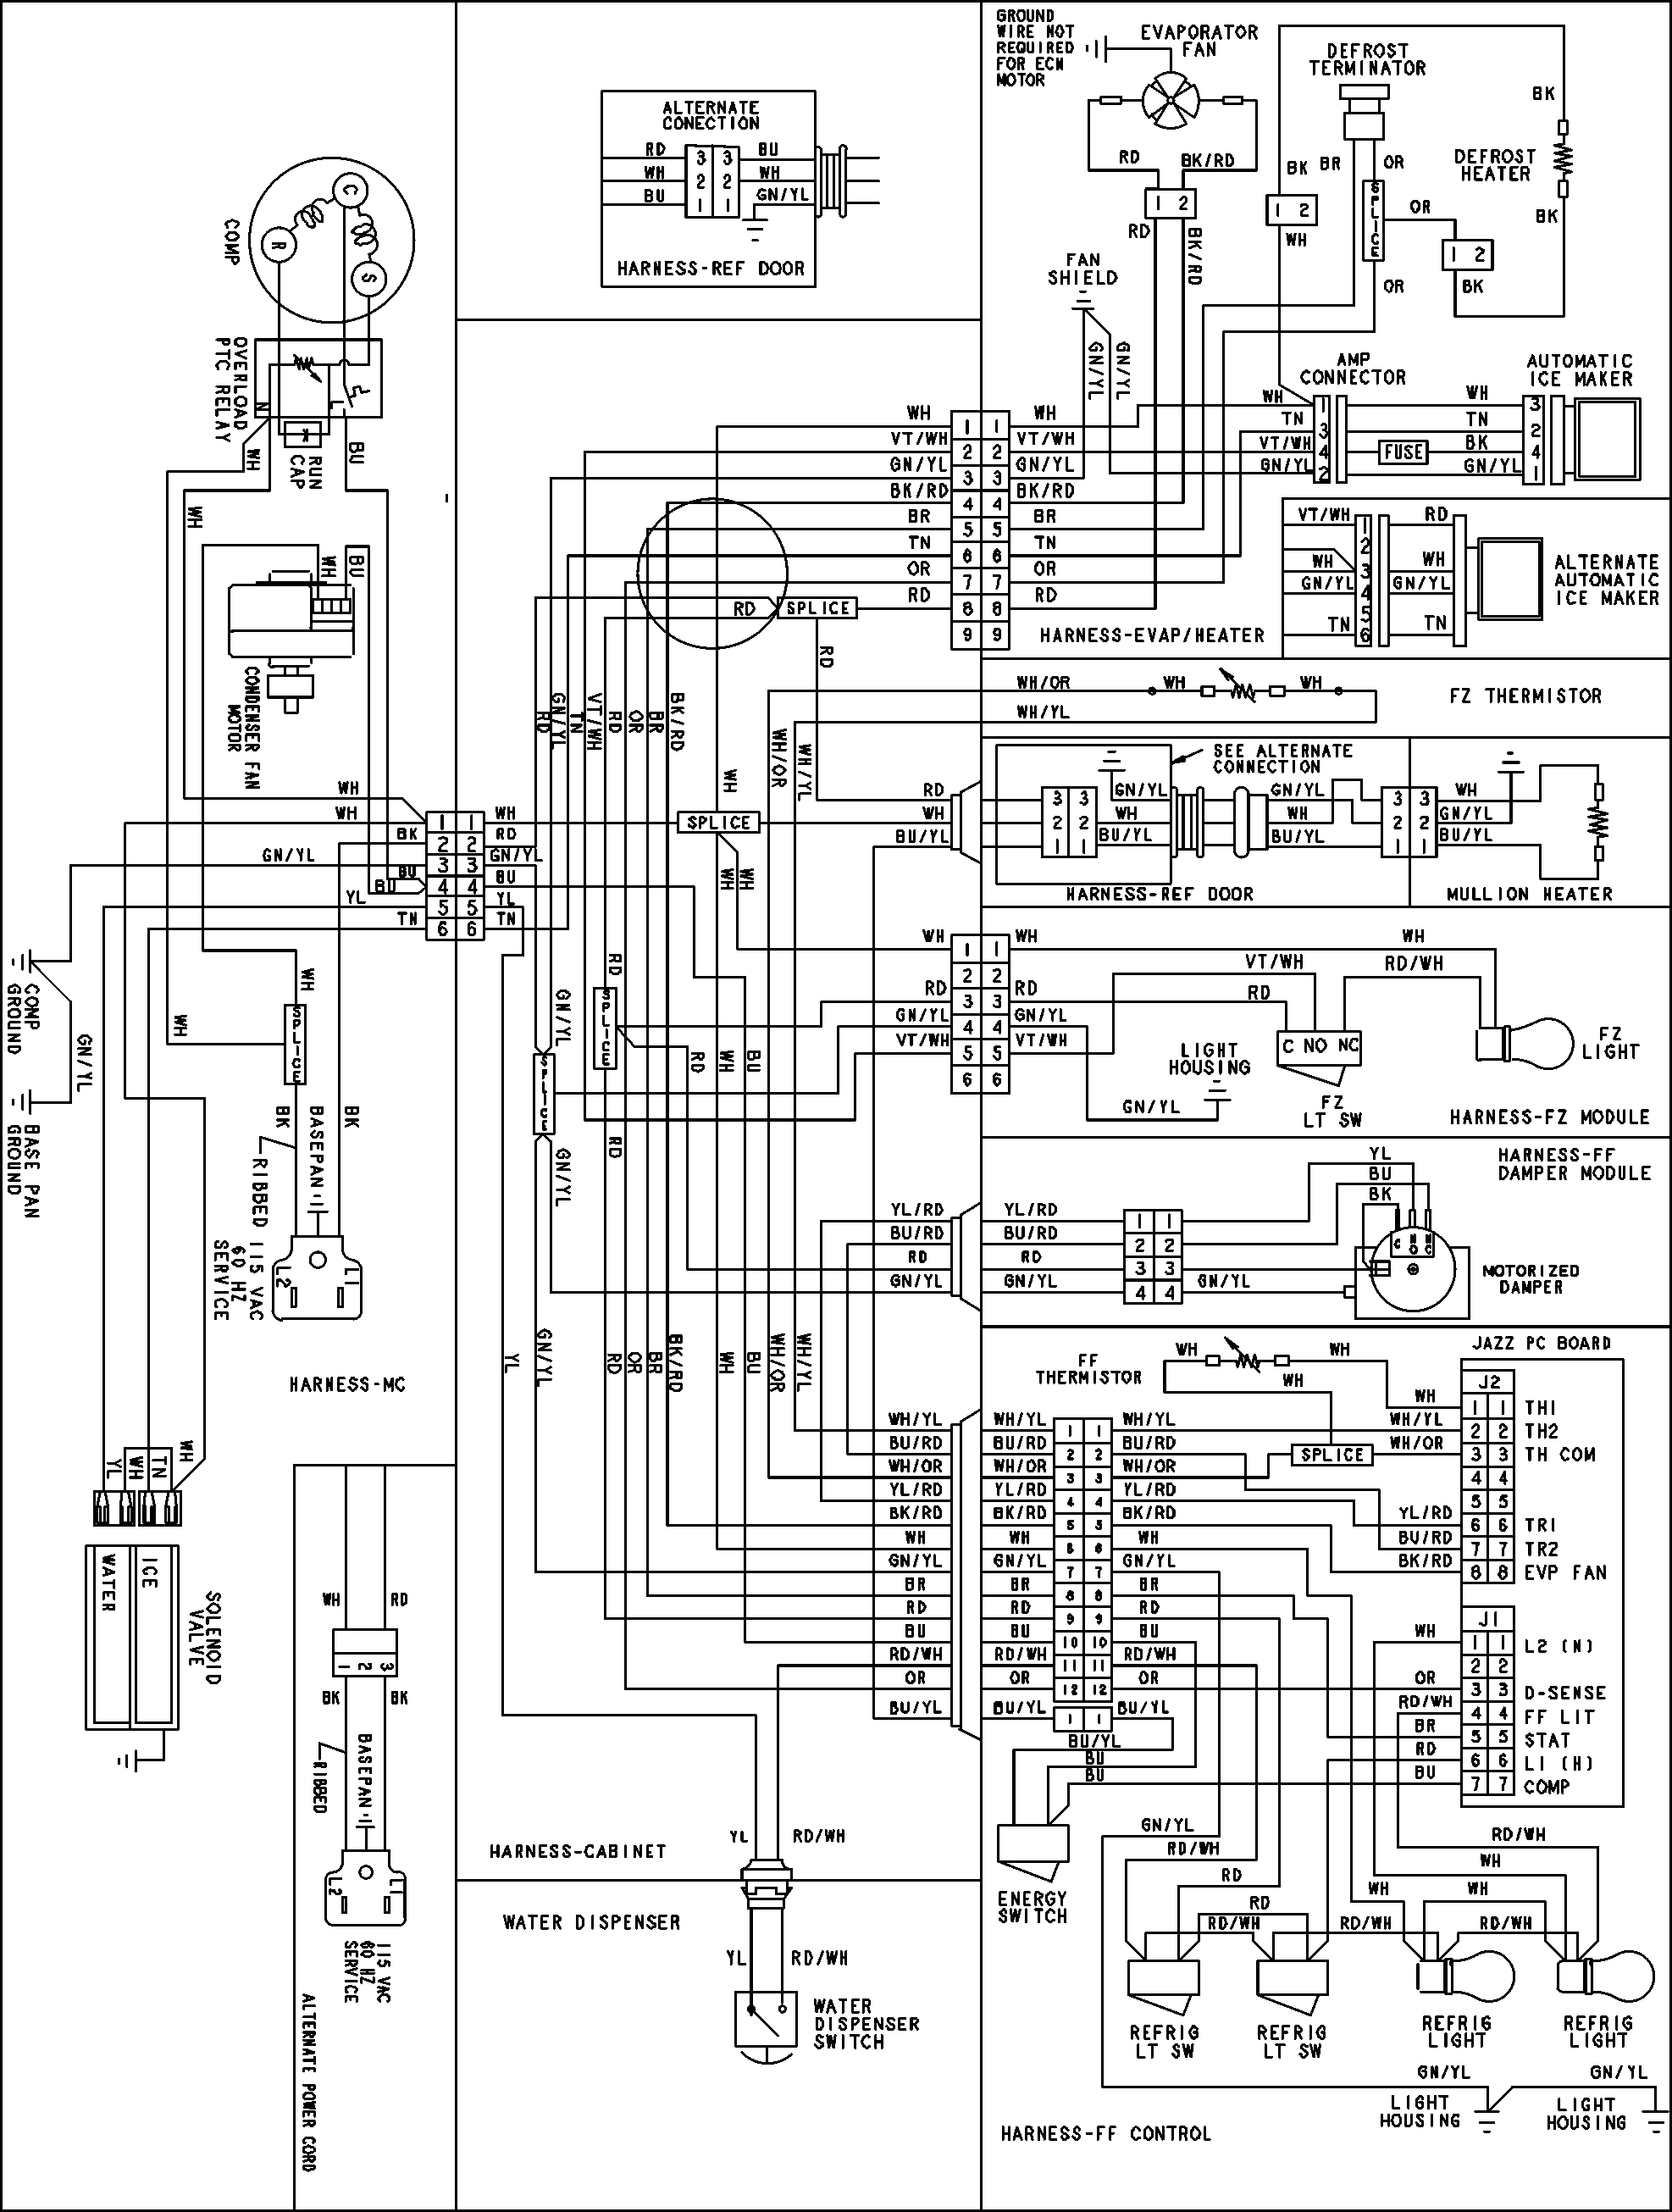 Goodman Ptac Wiring Diagram -Smart Car Wiring Diagram Tower | Begeboy Wiring  Diagram Source | Pump Amana Diagram Wiring Ptac Heat |  | Begeboy Wiring Diagram Source